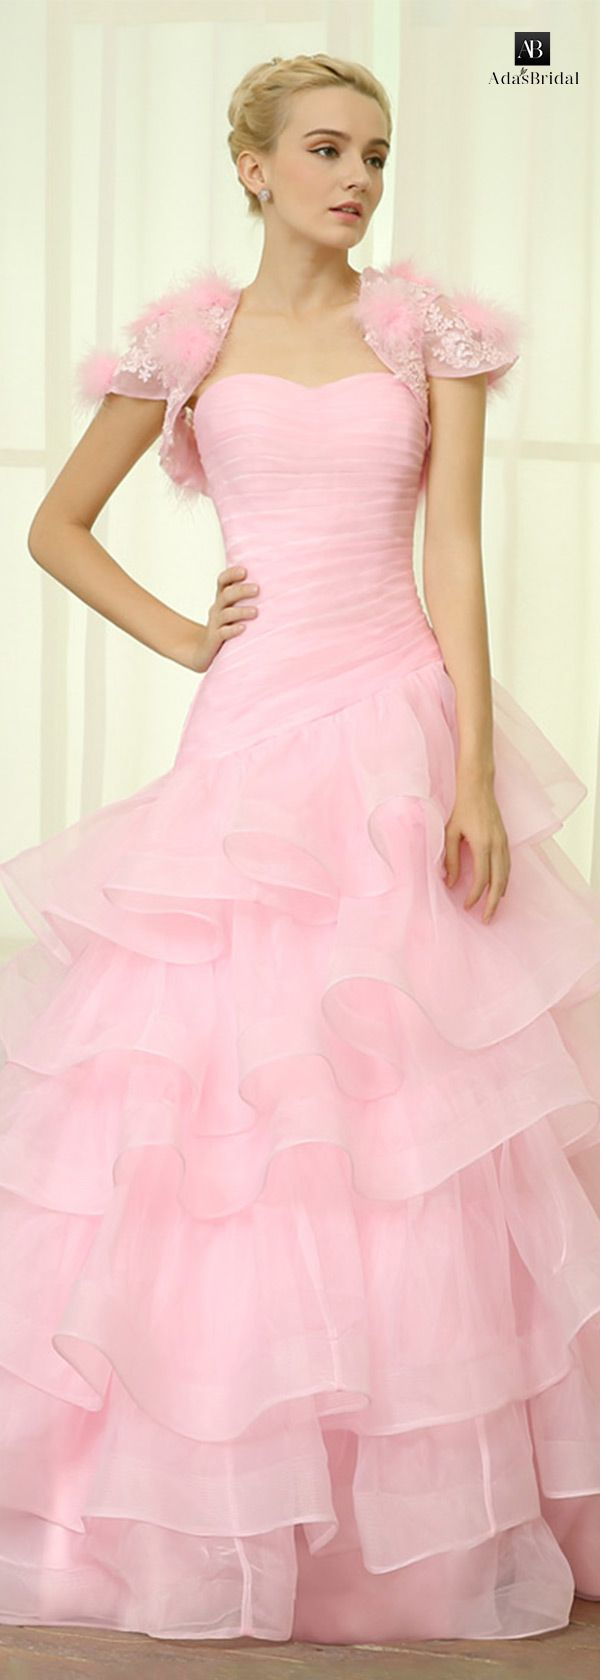 Glamorous organza sweetheart neckline ruffled A-line wedding dresses ...